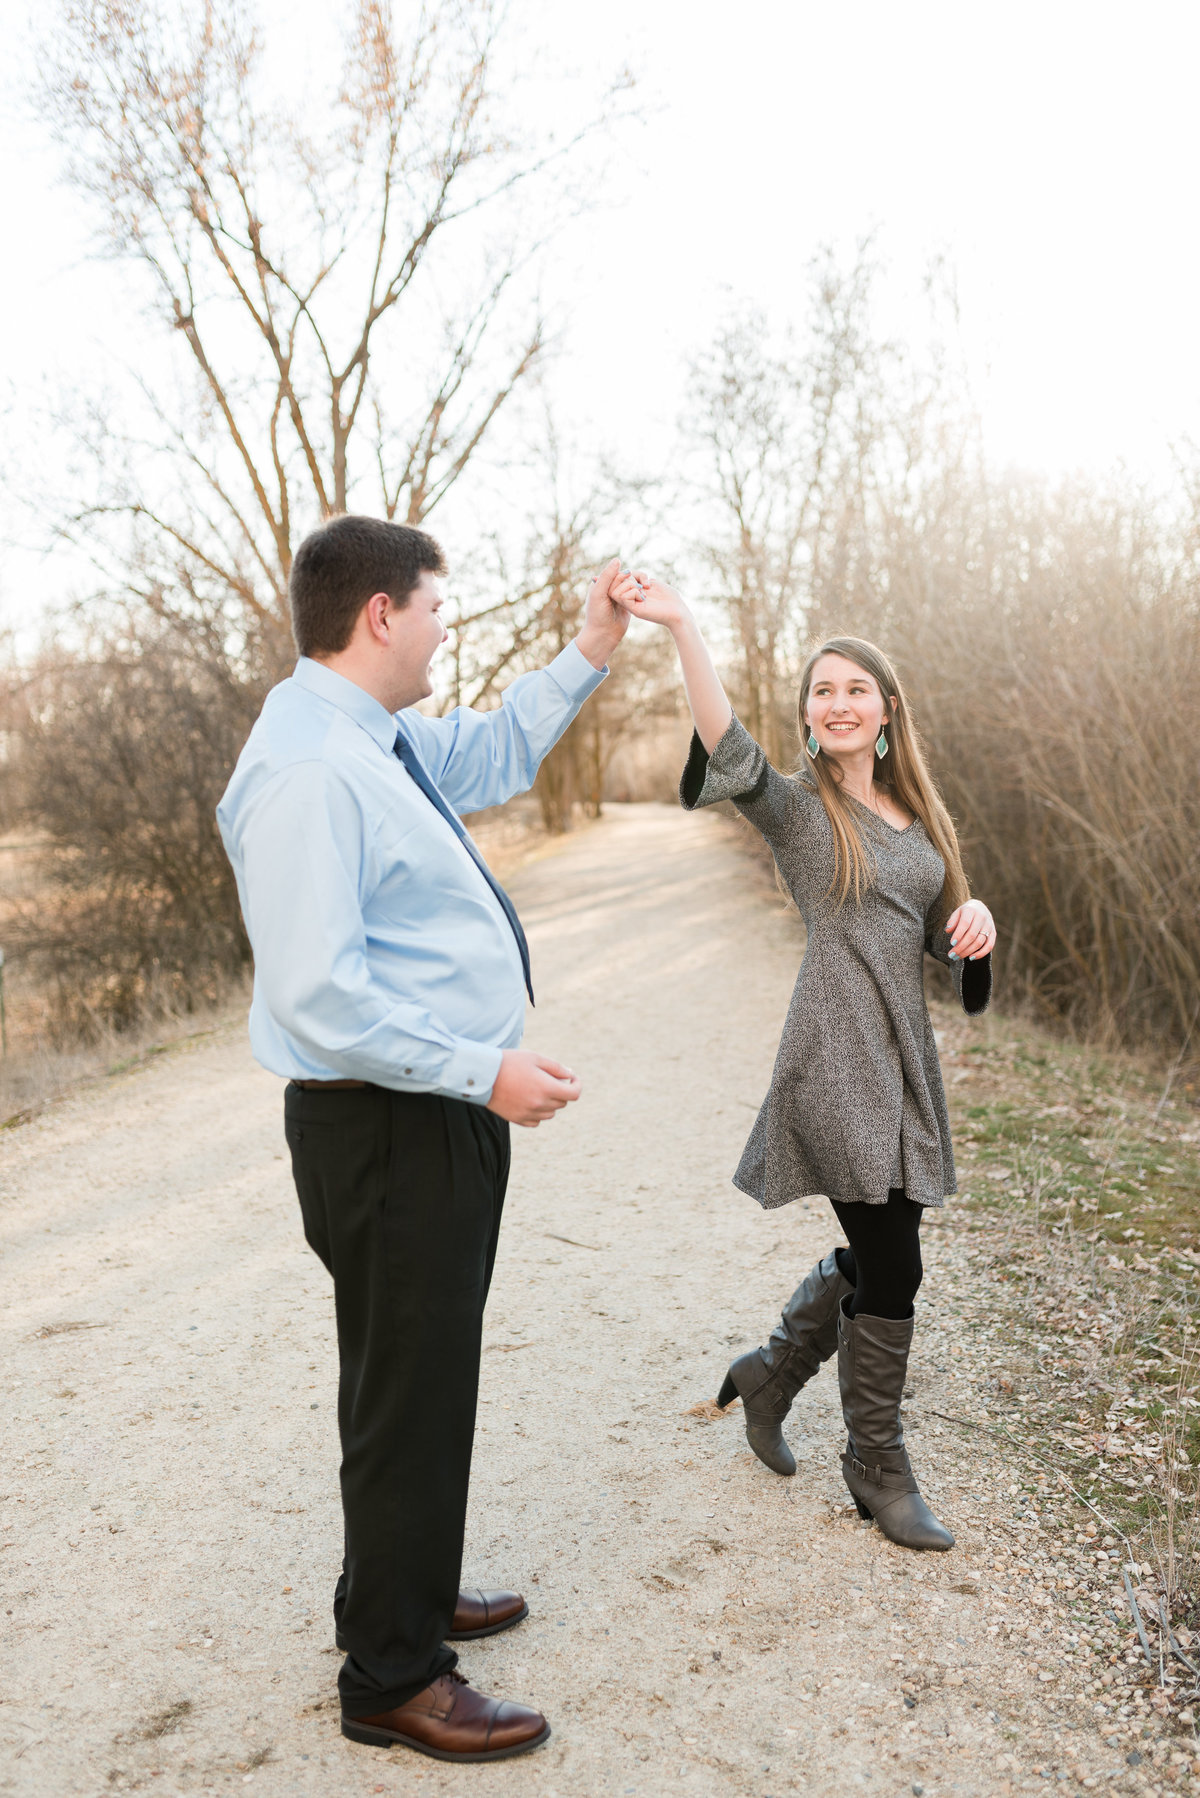 20190302 - Jannae and Forest Engagement Session 069 - A Winter Reid Merrill Park Engagement Session